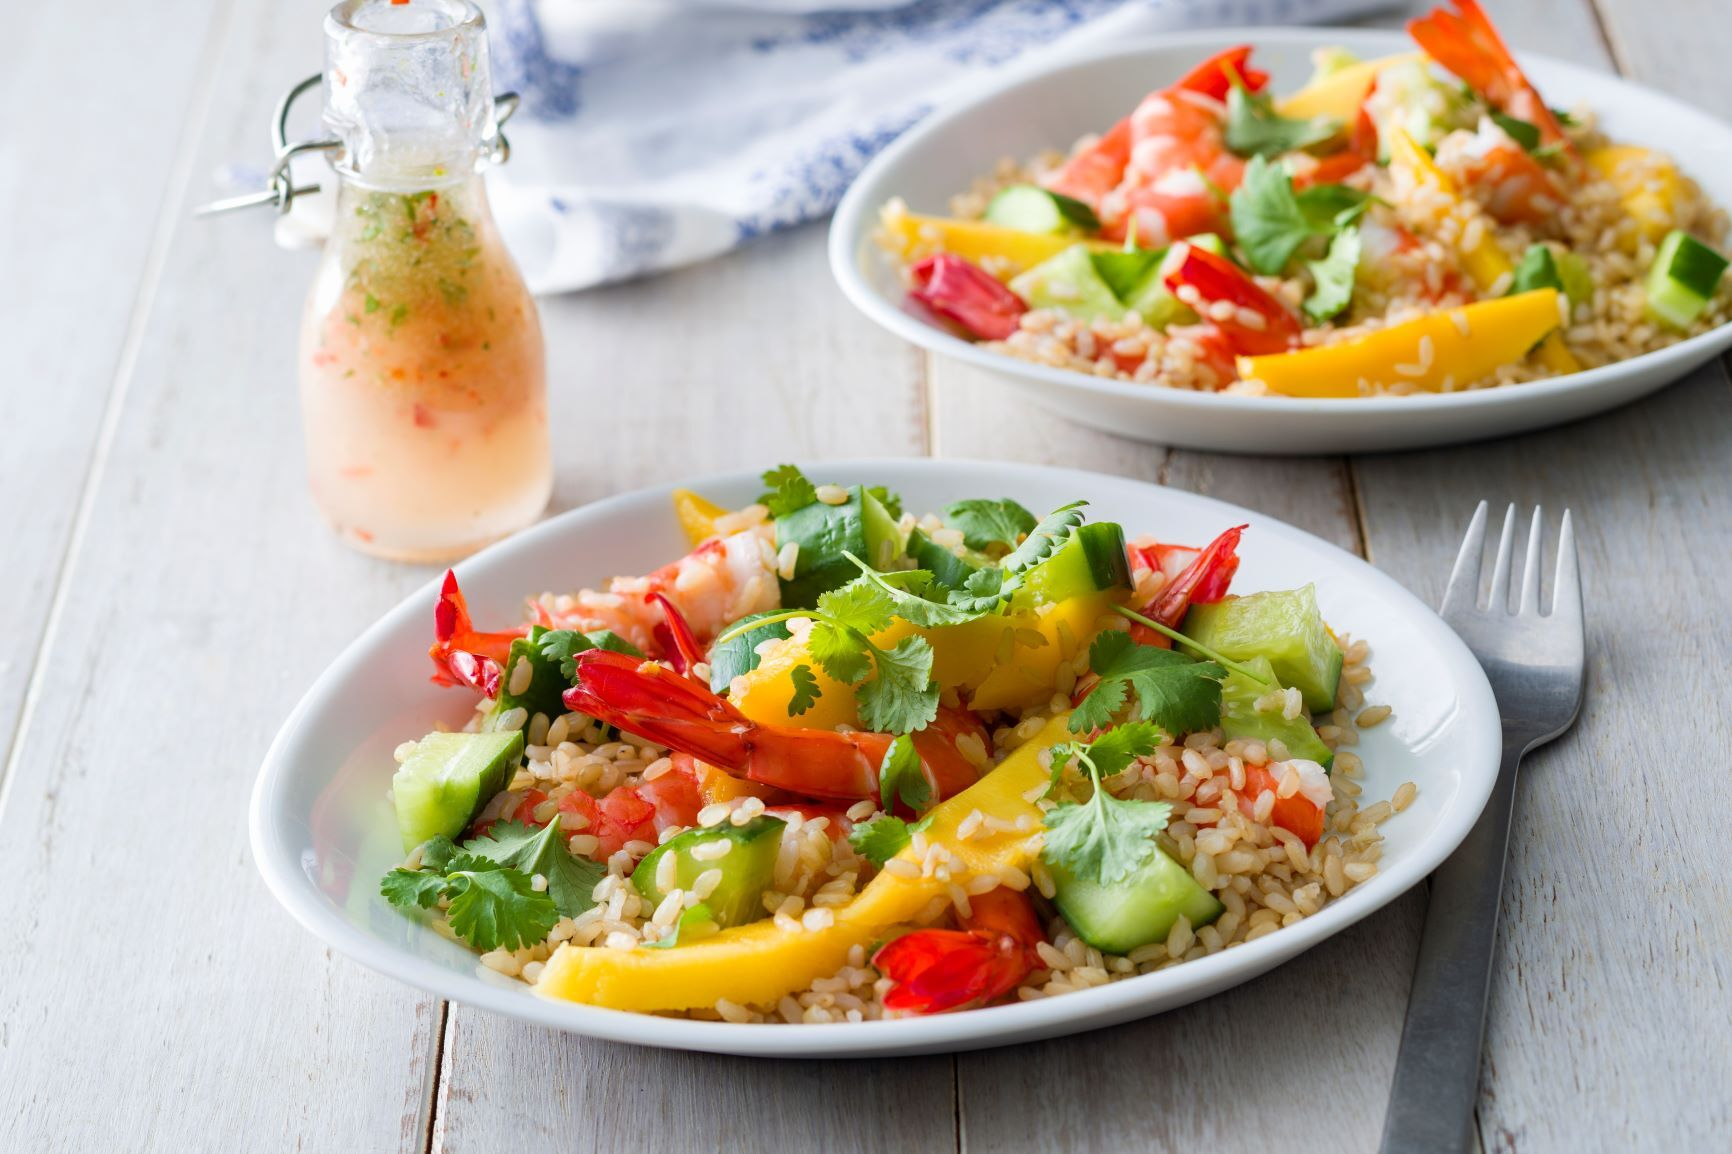 Prawn mango salad with brown rice